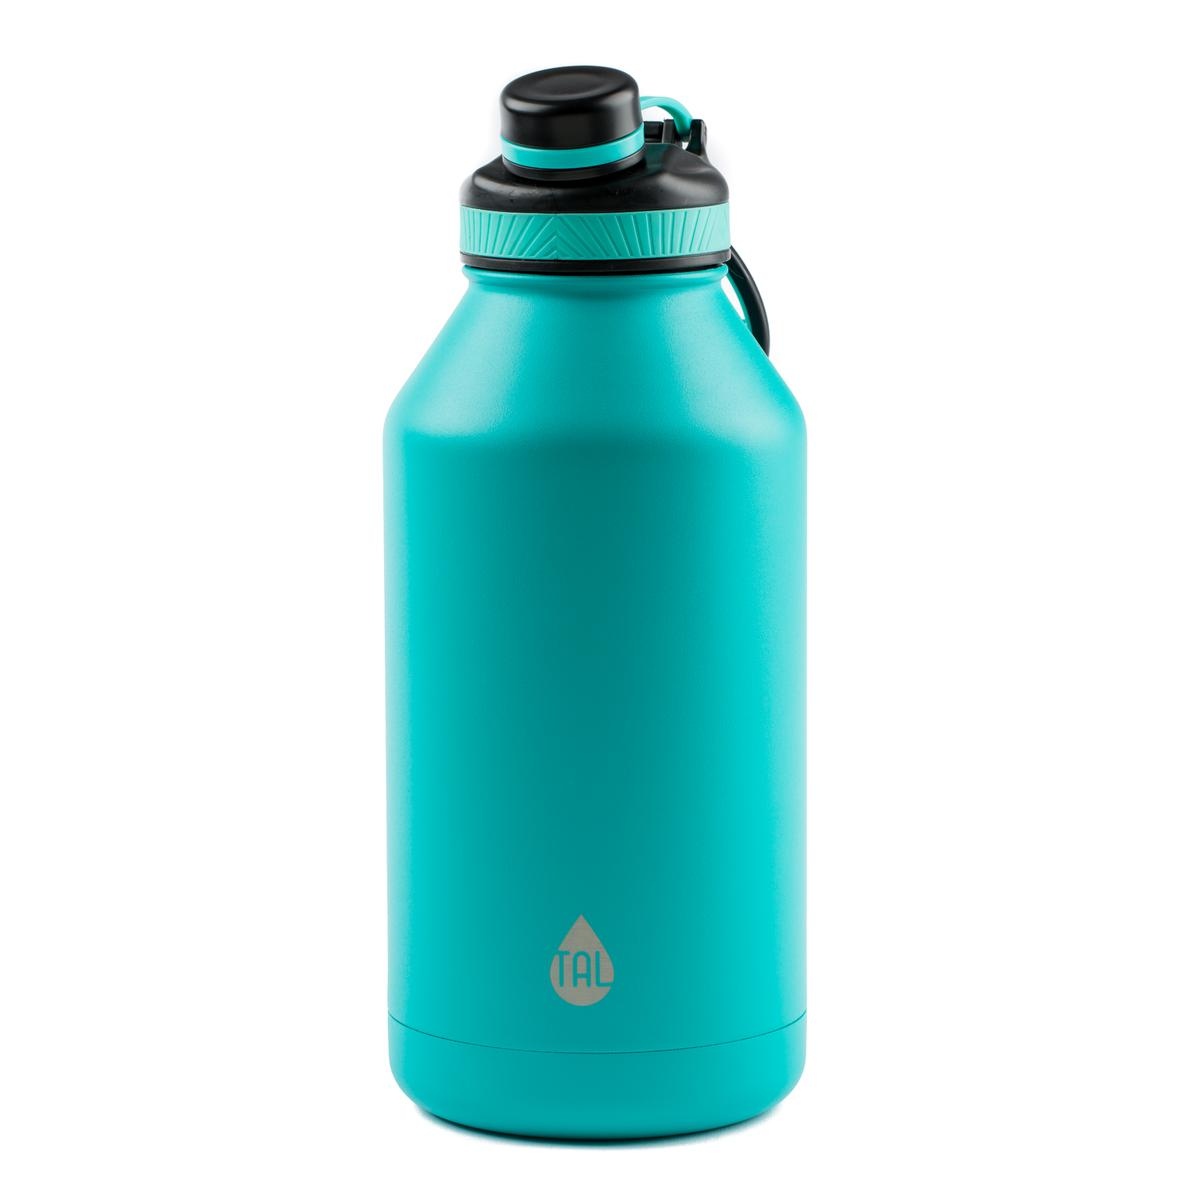 TAL Teal 64oz Double Wall Vacuum Insulated Stainless Steel Water Bottle